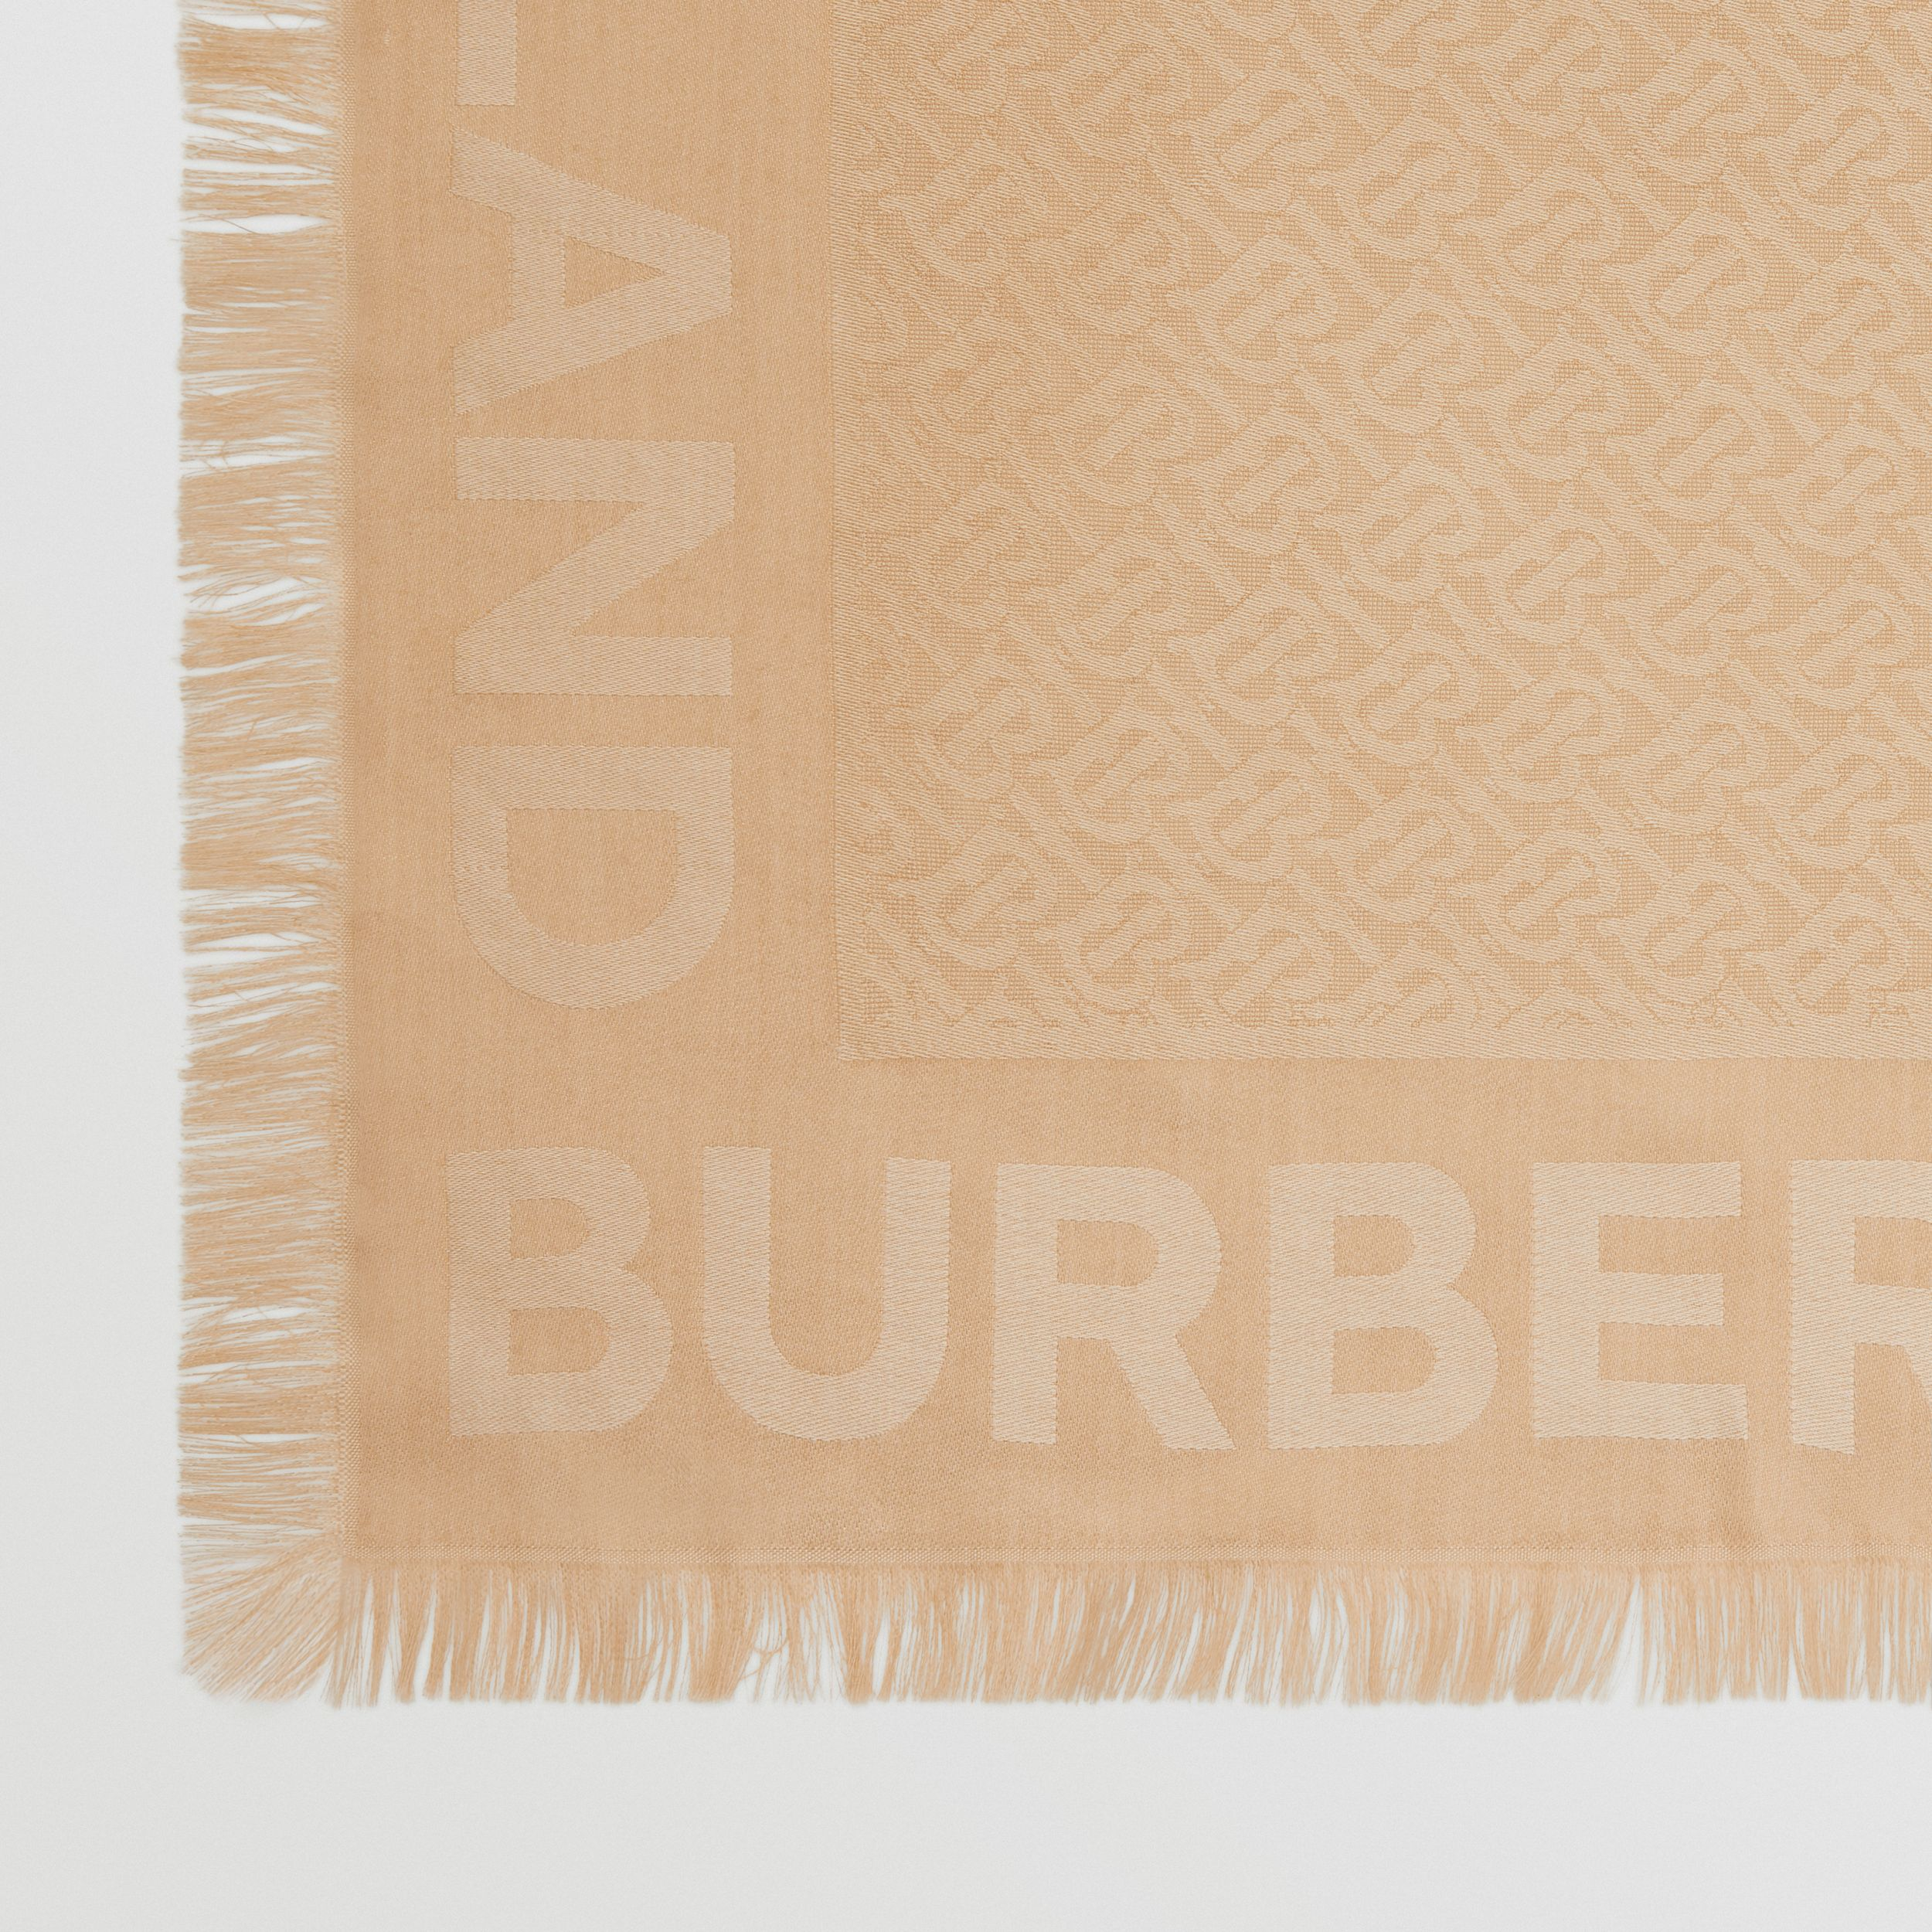 Monogram Silk Wool Jacquard Large Square Scarf in Honey | Burberry - 2